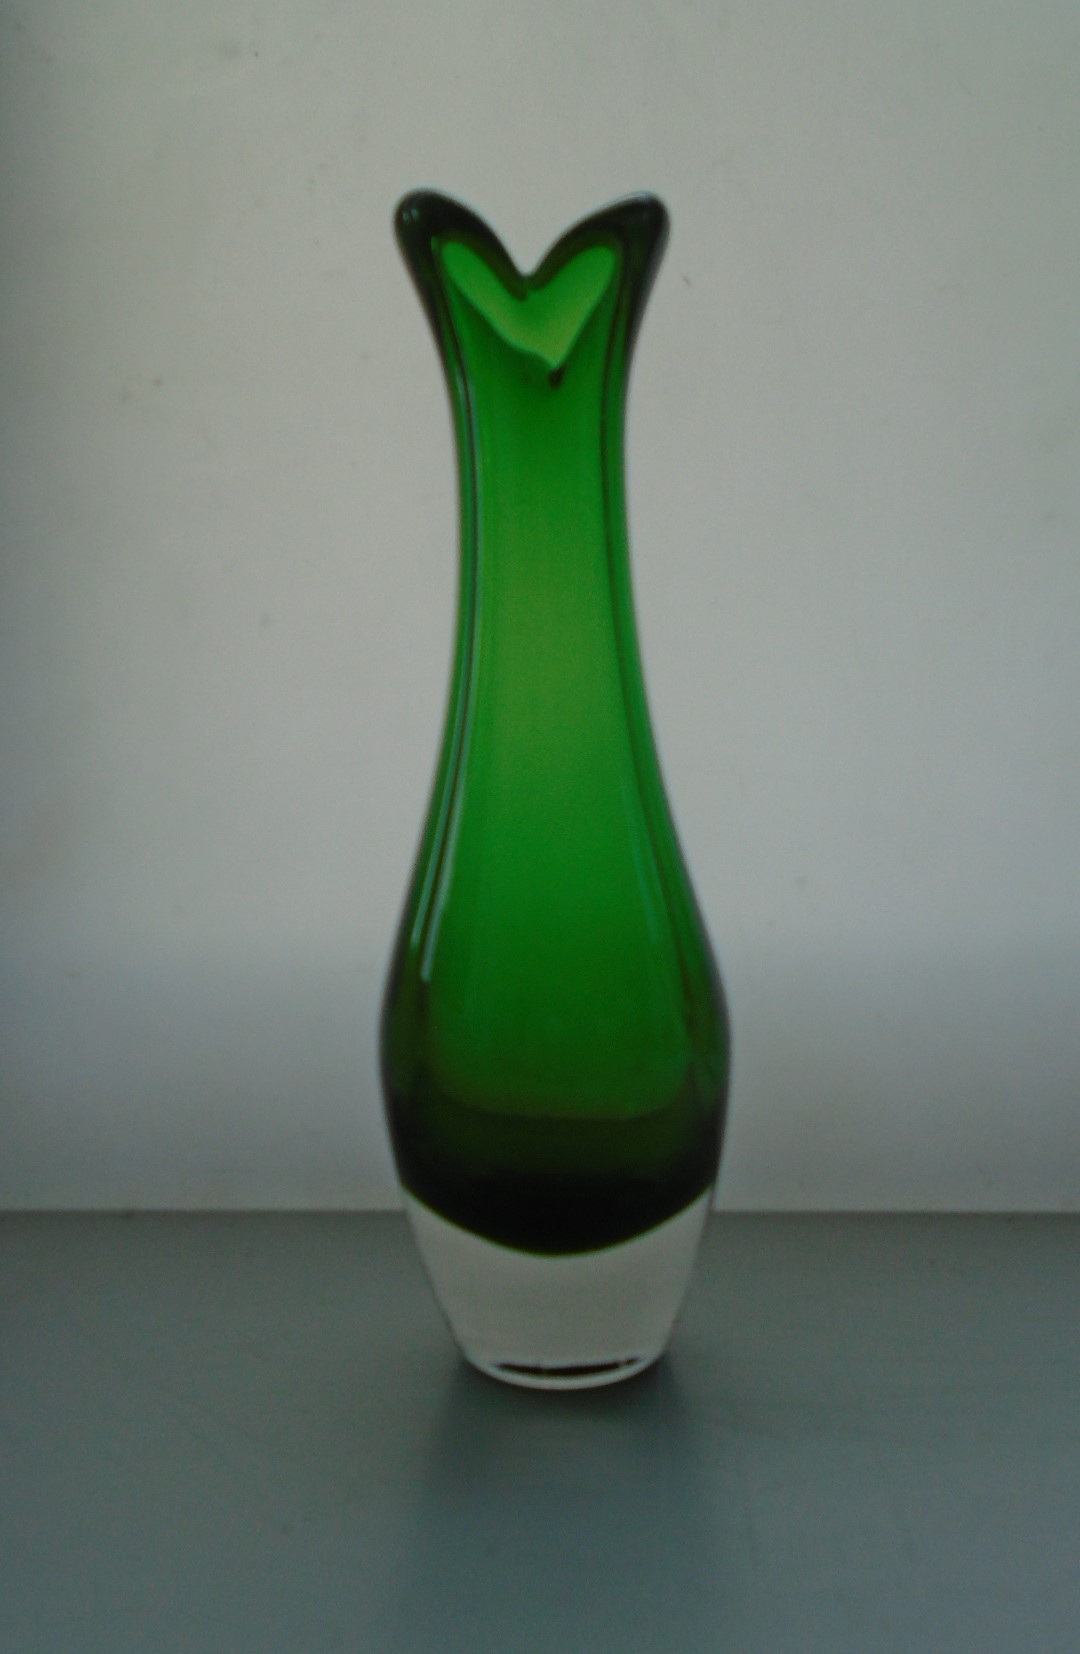 Fine example of a Vintage Whitefriar Glass Beak Vase in the less seen Meadow Green Colourway. Pattern 9556 designed by Geoffrey Baxter